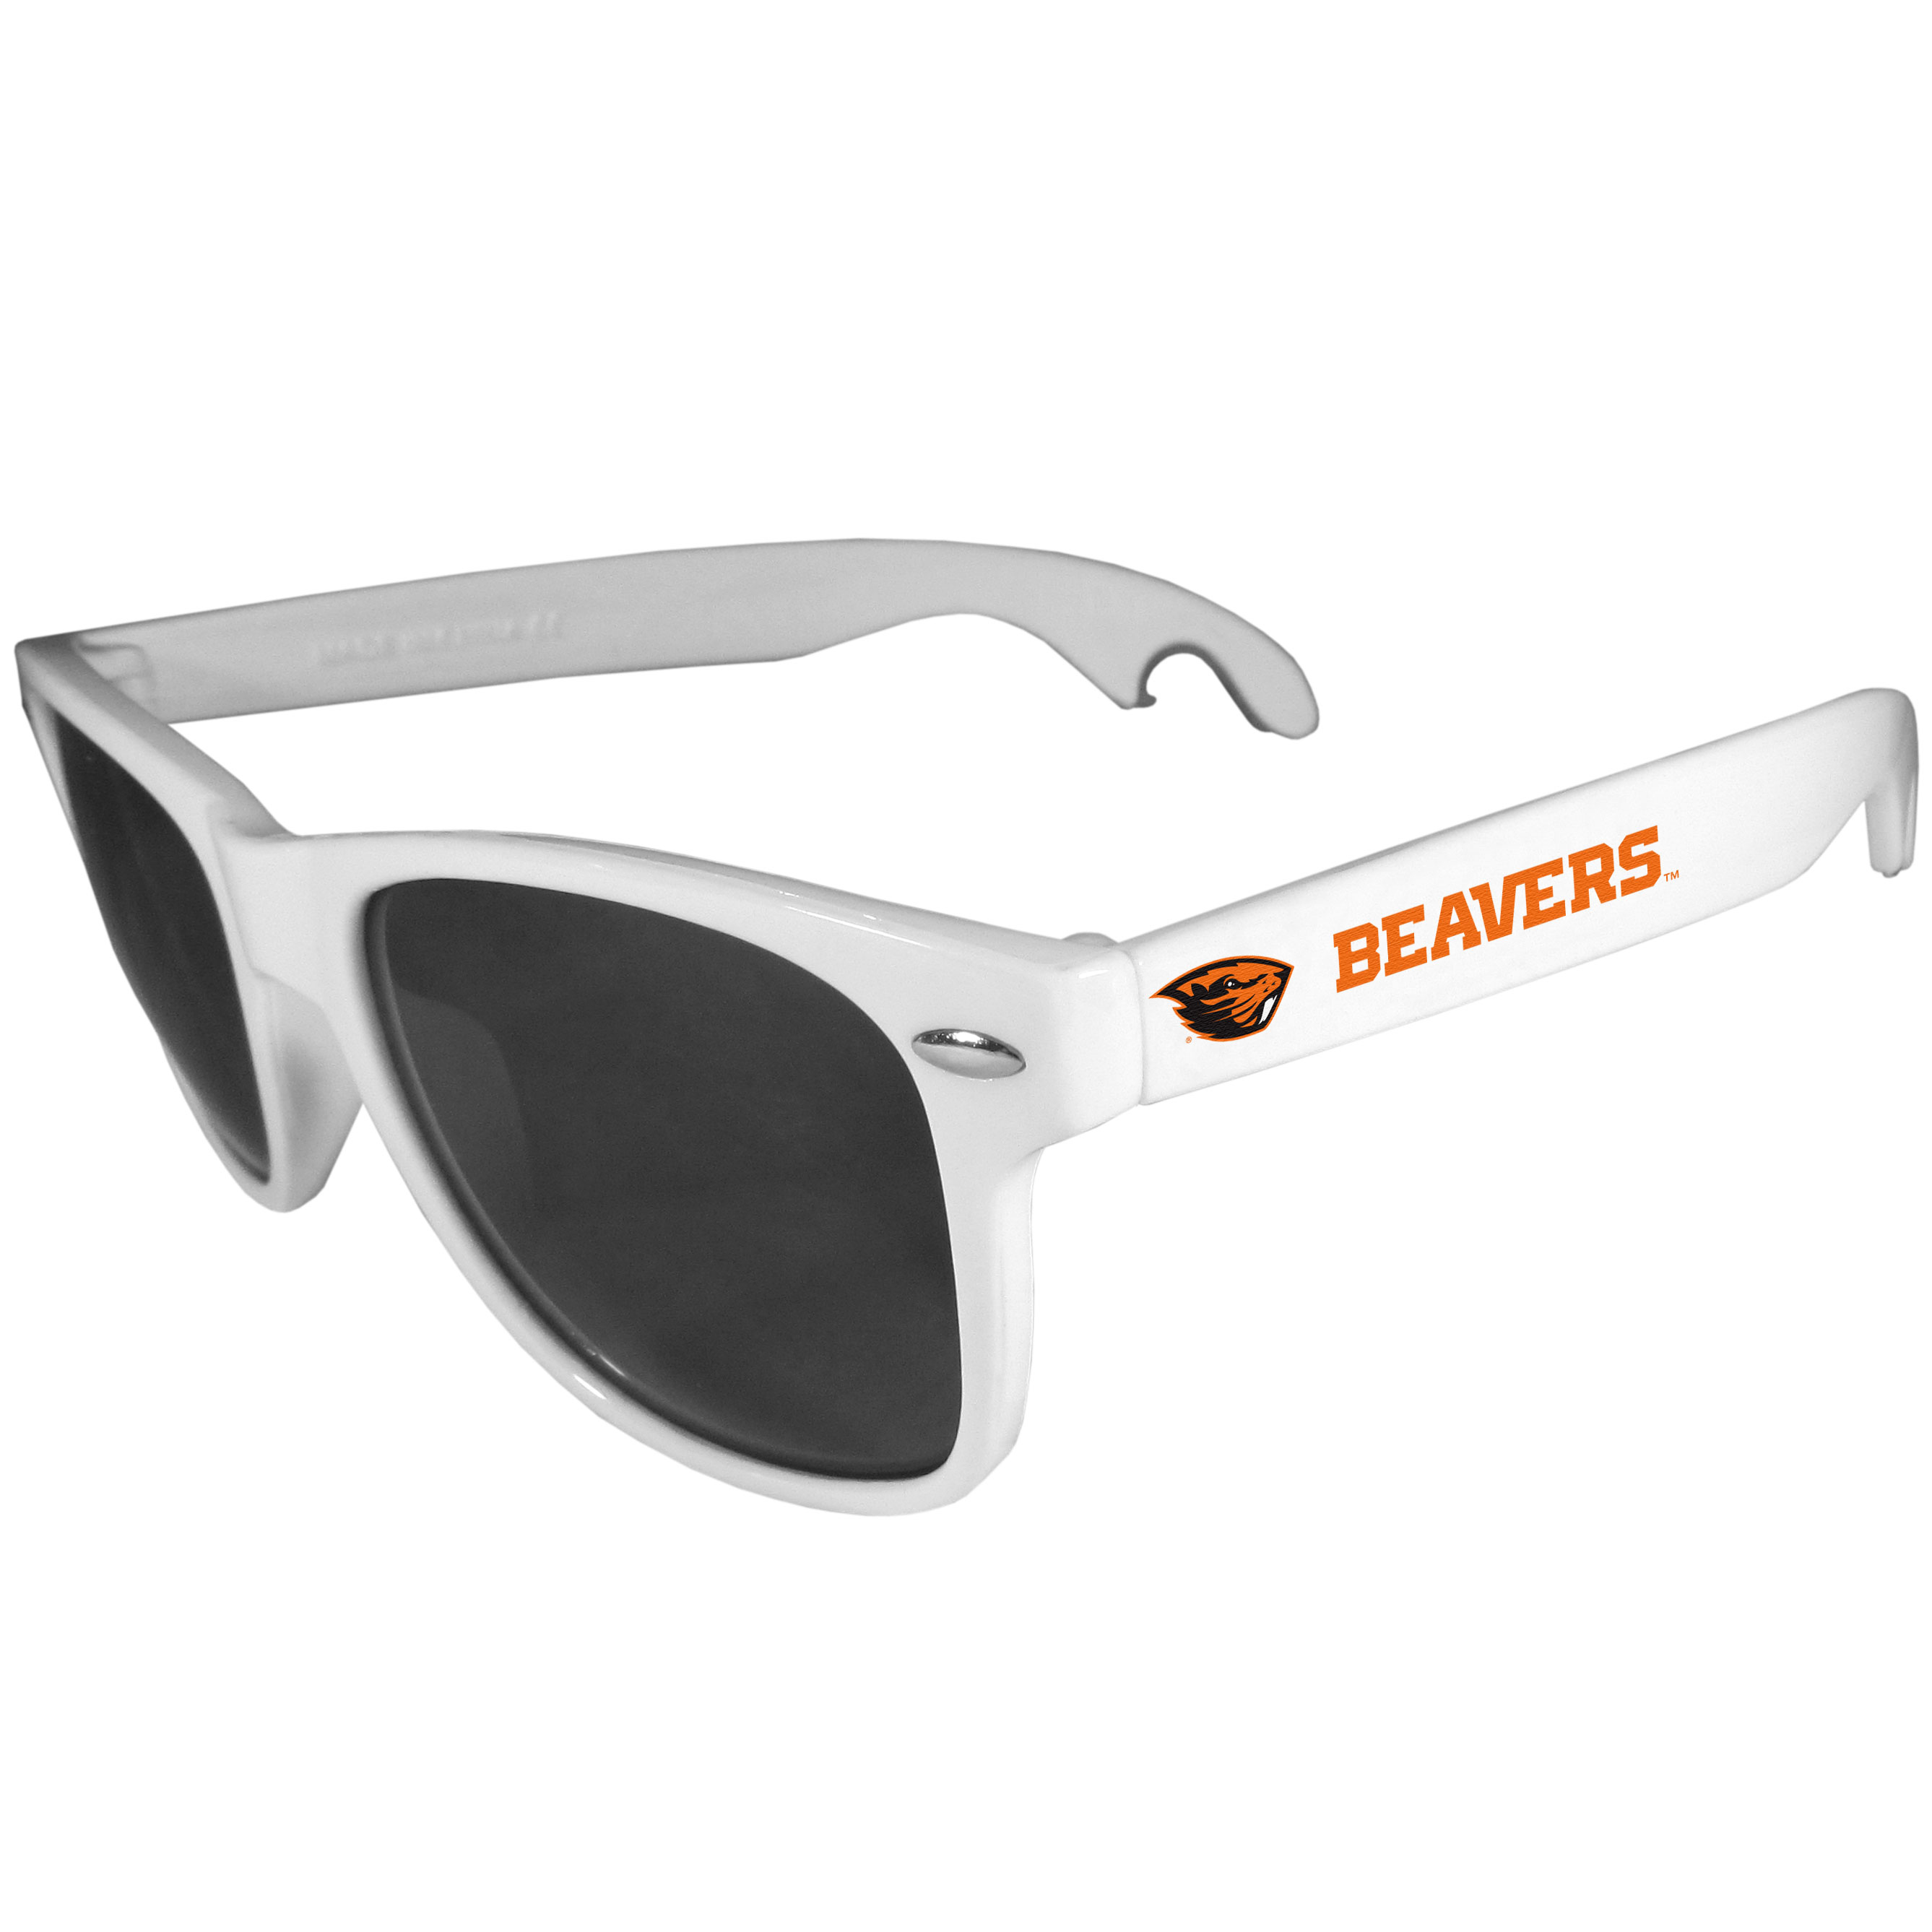 Oregon St. Beavers Beachfarer Bottle Opener Sunglasses, White - Seriously, these sunglasses open bottles! Keep the party going with these amazing Oregon St. Beavers bottle opener sunglasses. The stylish retro frames feature team designs on the arms and functional bottle openers on the end of the arms. Whether you are at the beach or having a backyard BBQ on game day, these shades will keep your eyes protected with 100% UVA/UVB protection and keep you hydrated with the handy bottle opener arms.